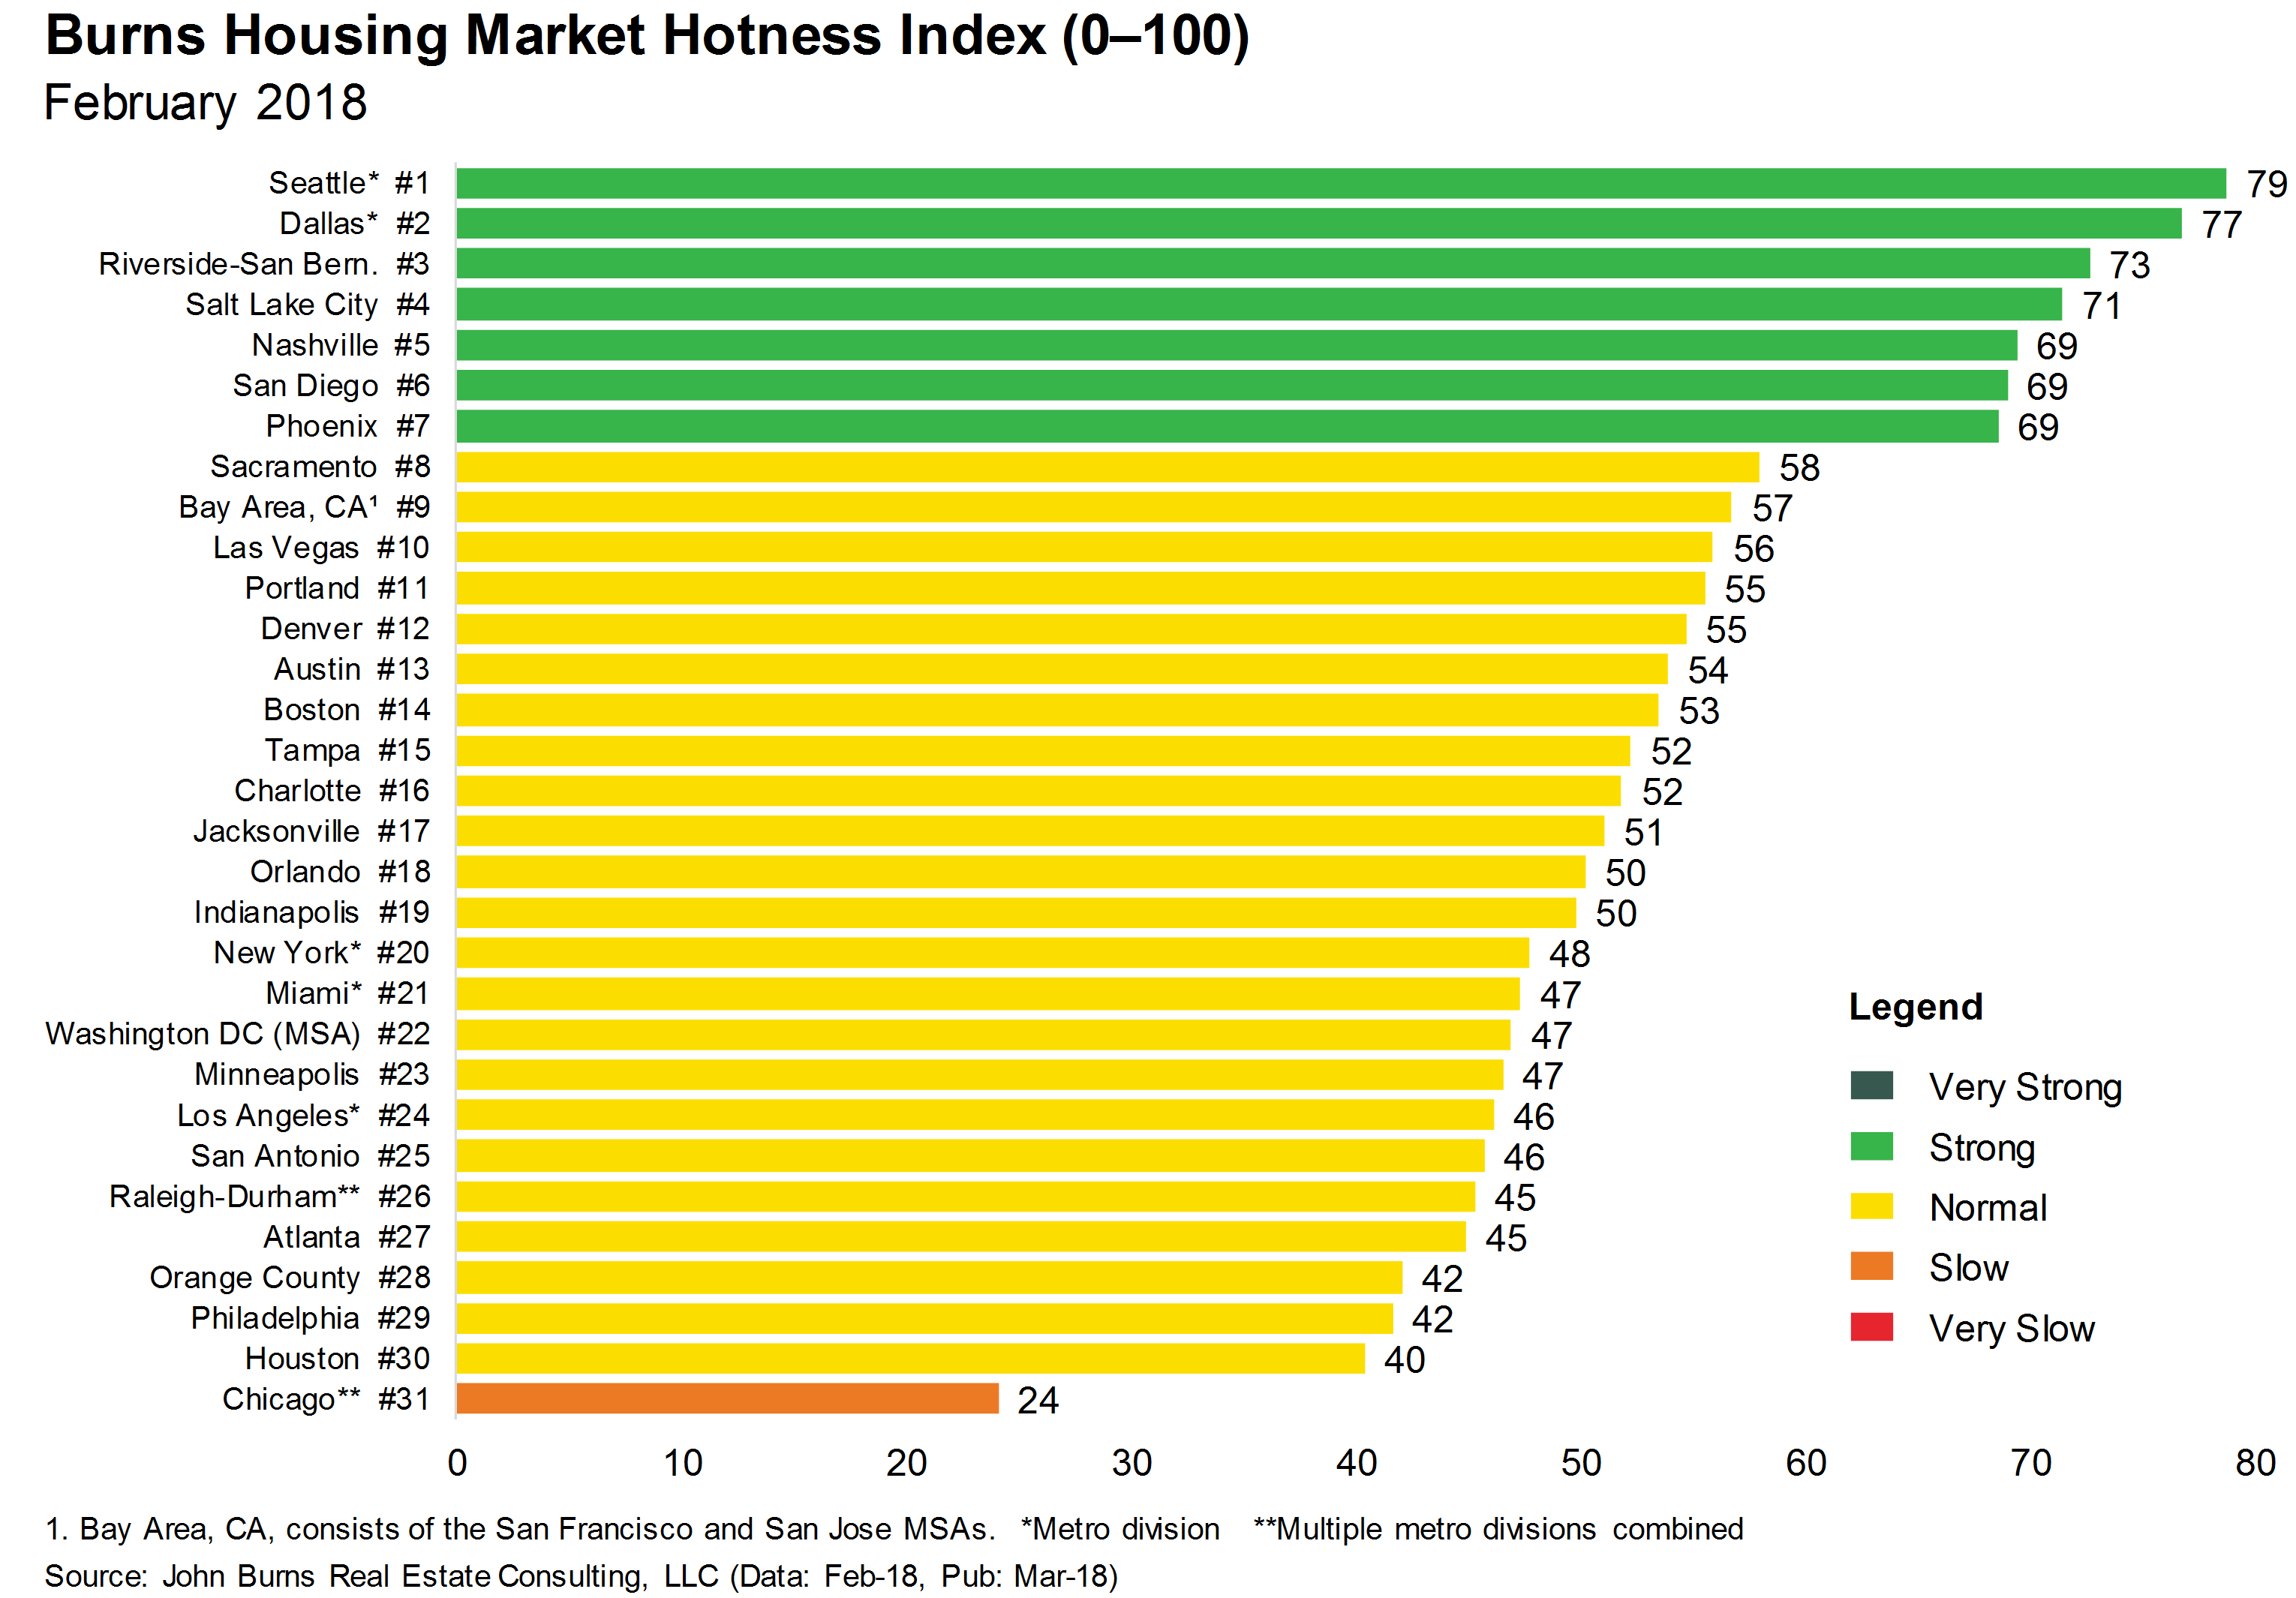 The Seven Sizzling Housing Markets | John Burns Real Estate Consulting